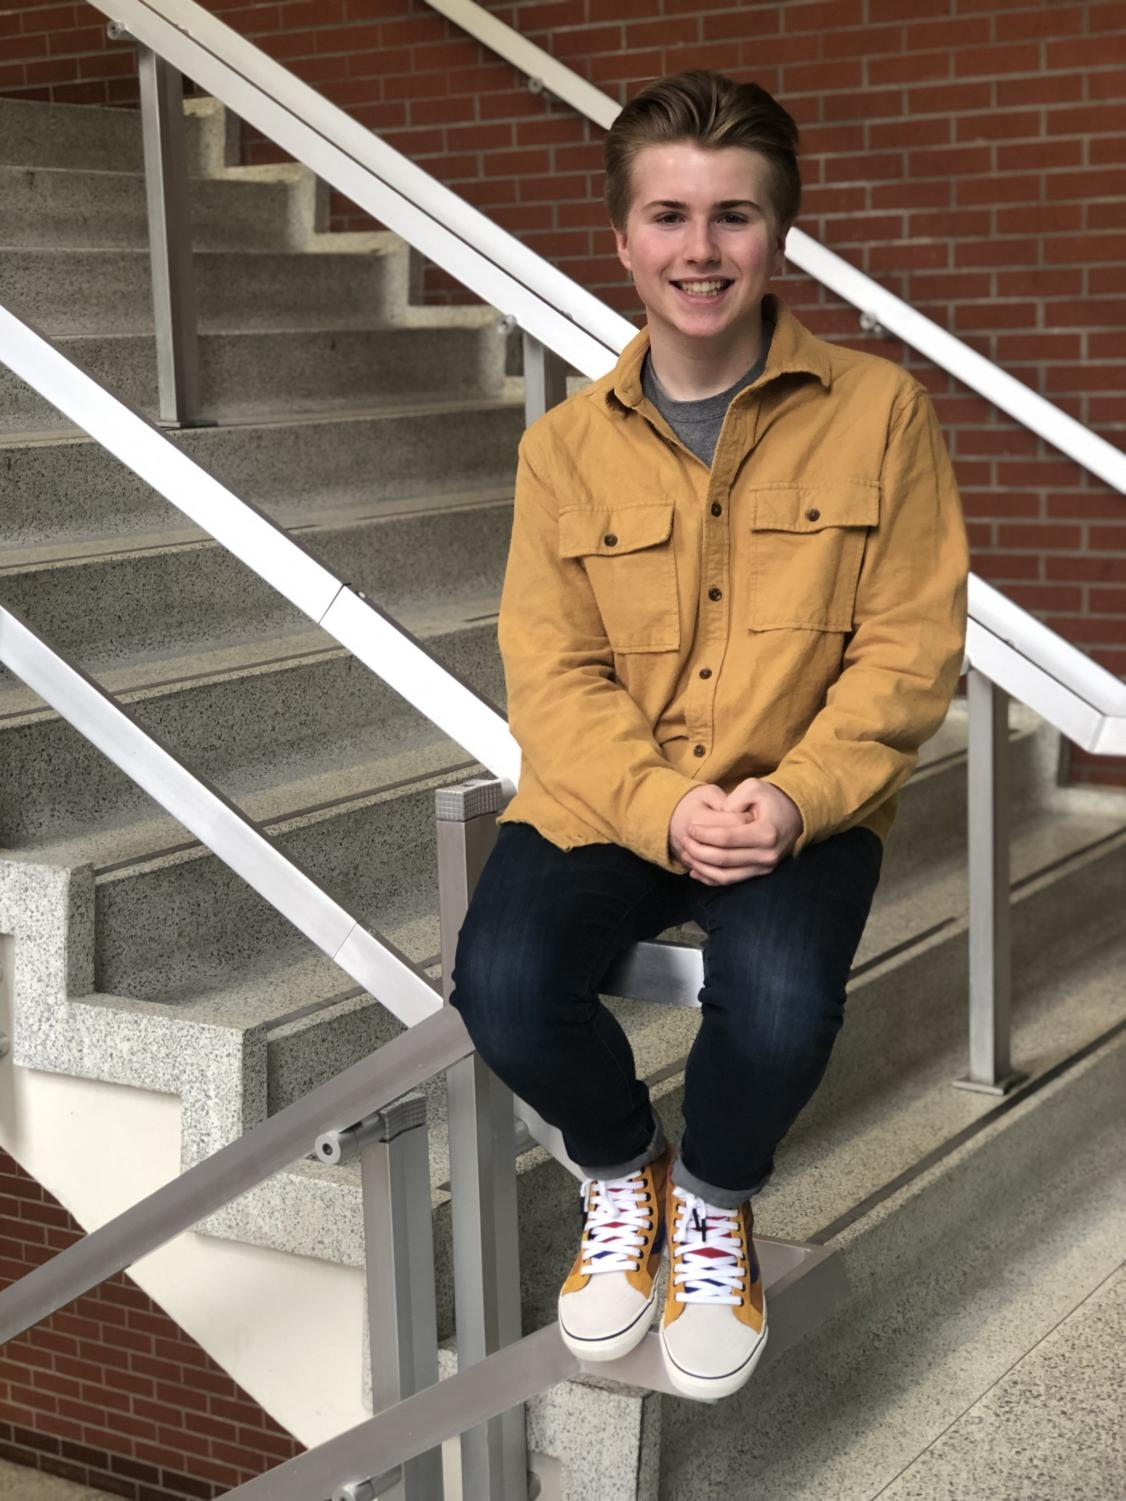 April+4%2C+2019+--%0A%0A0.25%2F5+outfit.+Yellows+matched+adequately.+Shirt+was+wrinkled.+Shoes+not+yet+dirty.+%0A--+Quinn+Soltesz+